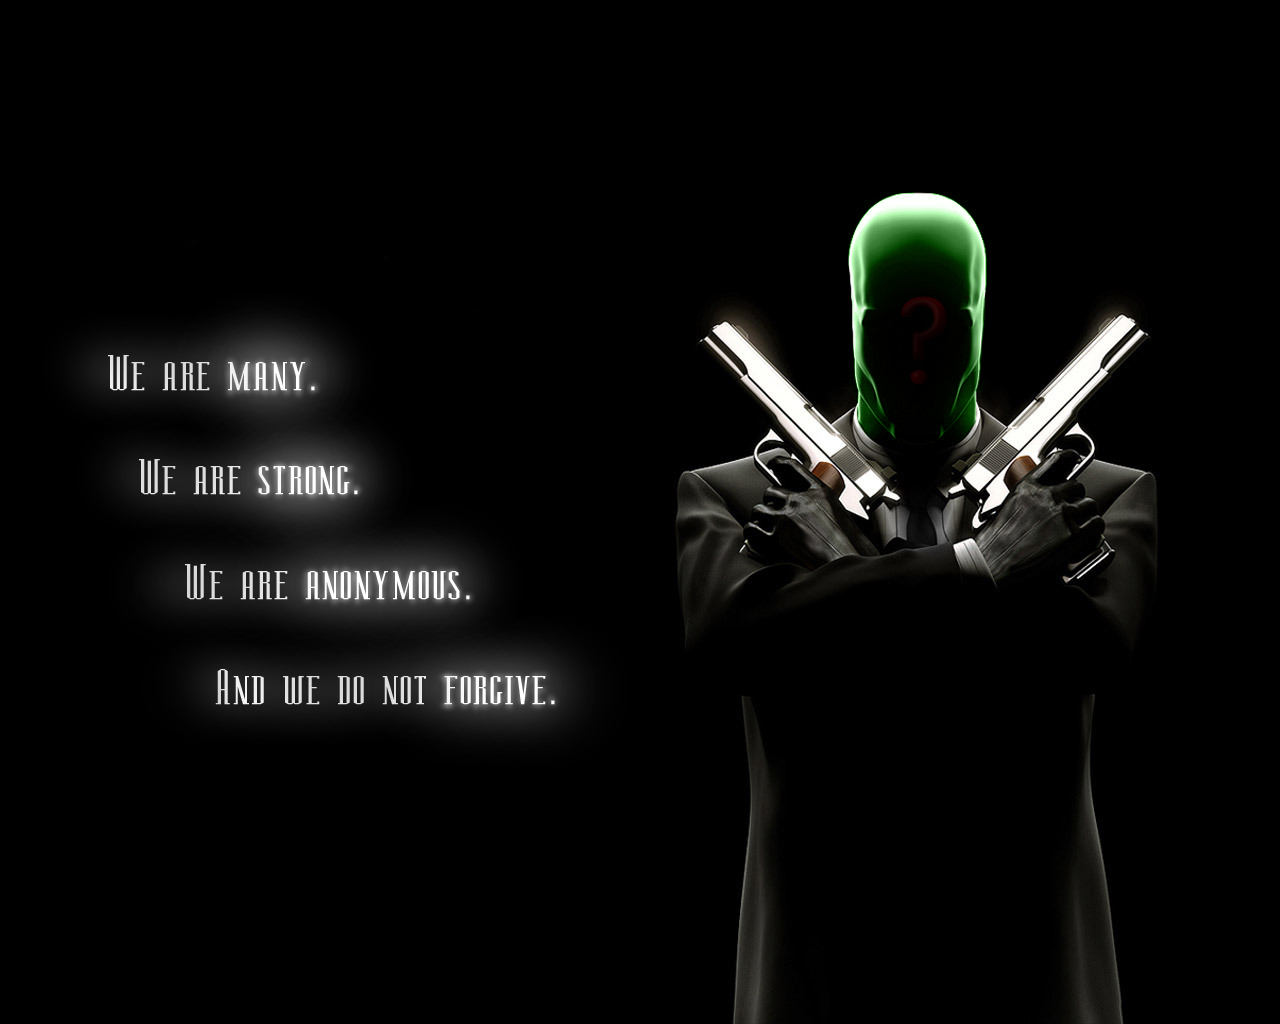 Md5 Linux Anonymous India Hackers Wallpapers 1280x1024